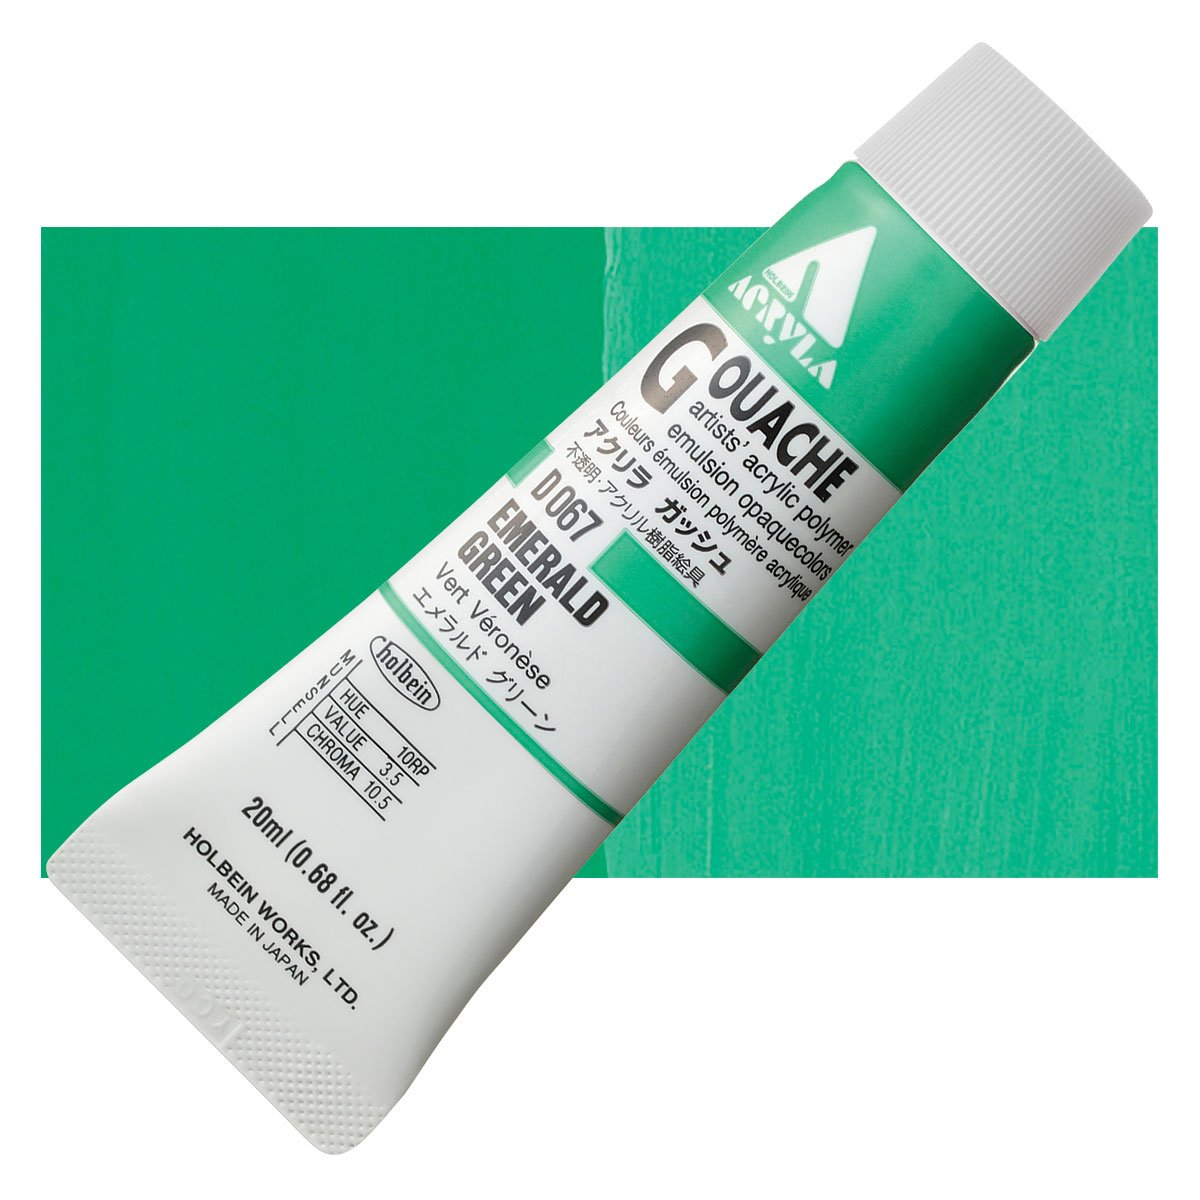 Holbein Acryla Gouache 20ml Tubes - Emerald Green by Holbein - K. A. Artist Shop